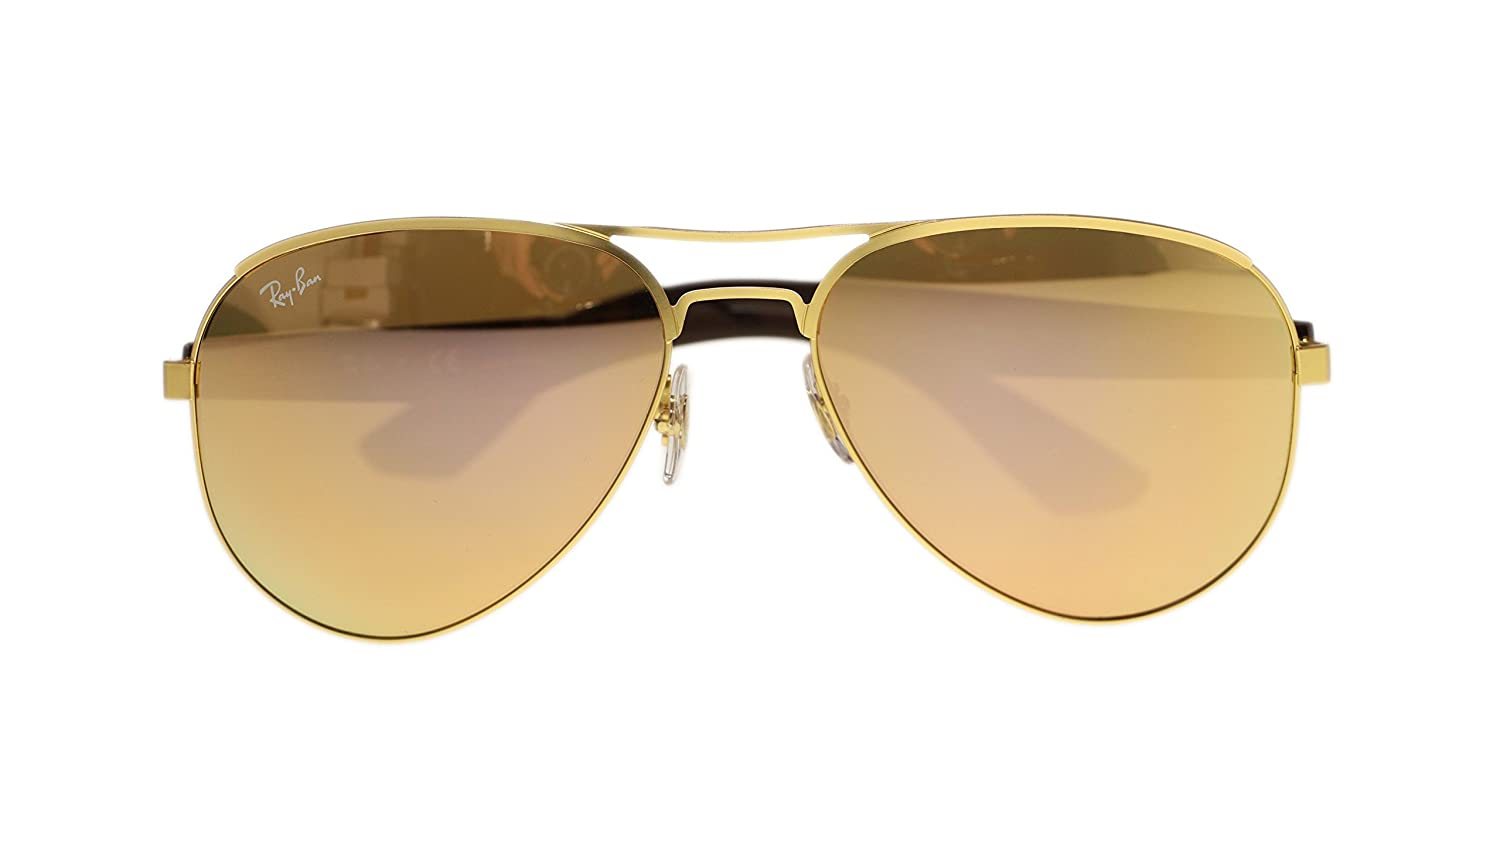 bbe6607a42b Ray Ban Mens Sunglasses RB3523 112 2Y Gold Light Brown Mirror Pink Lens  59mm Authentic  Amazon.co.uk  Clothing